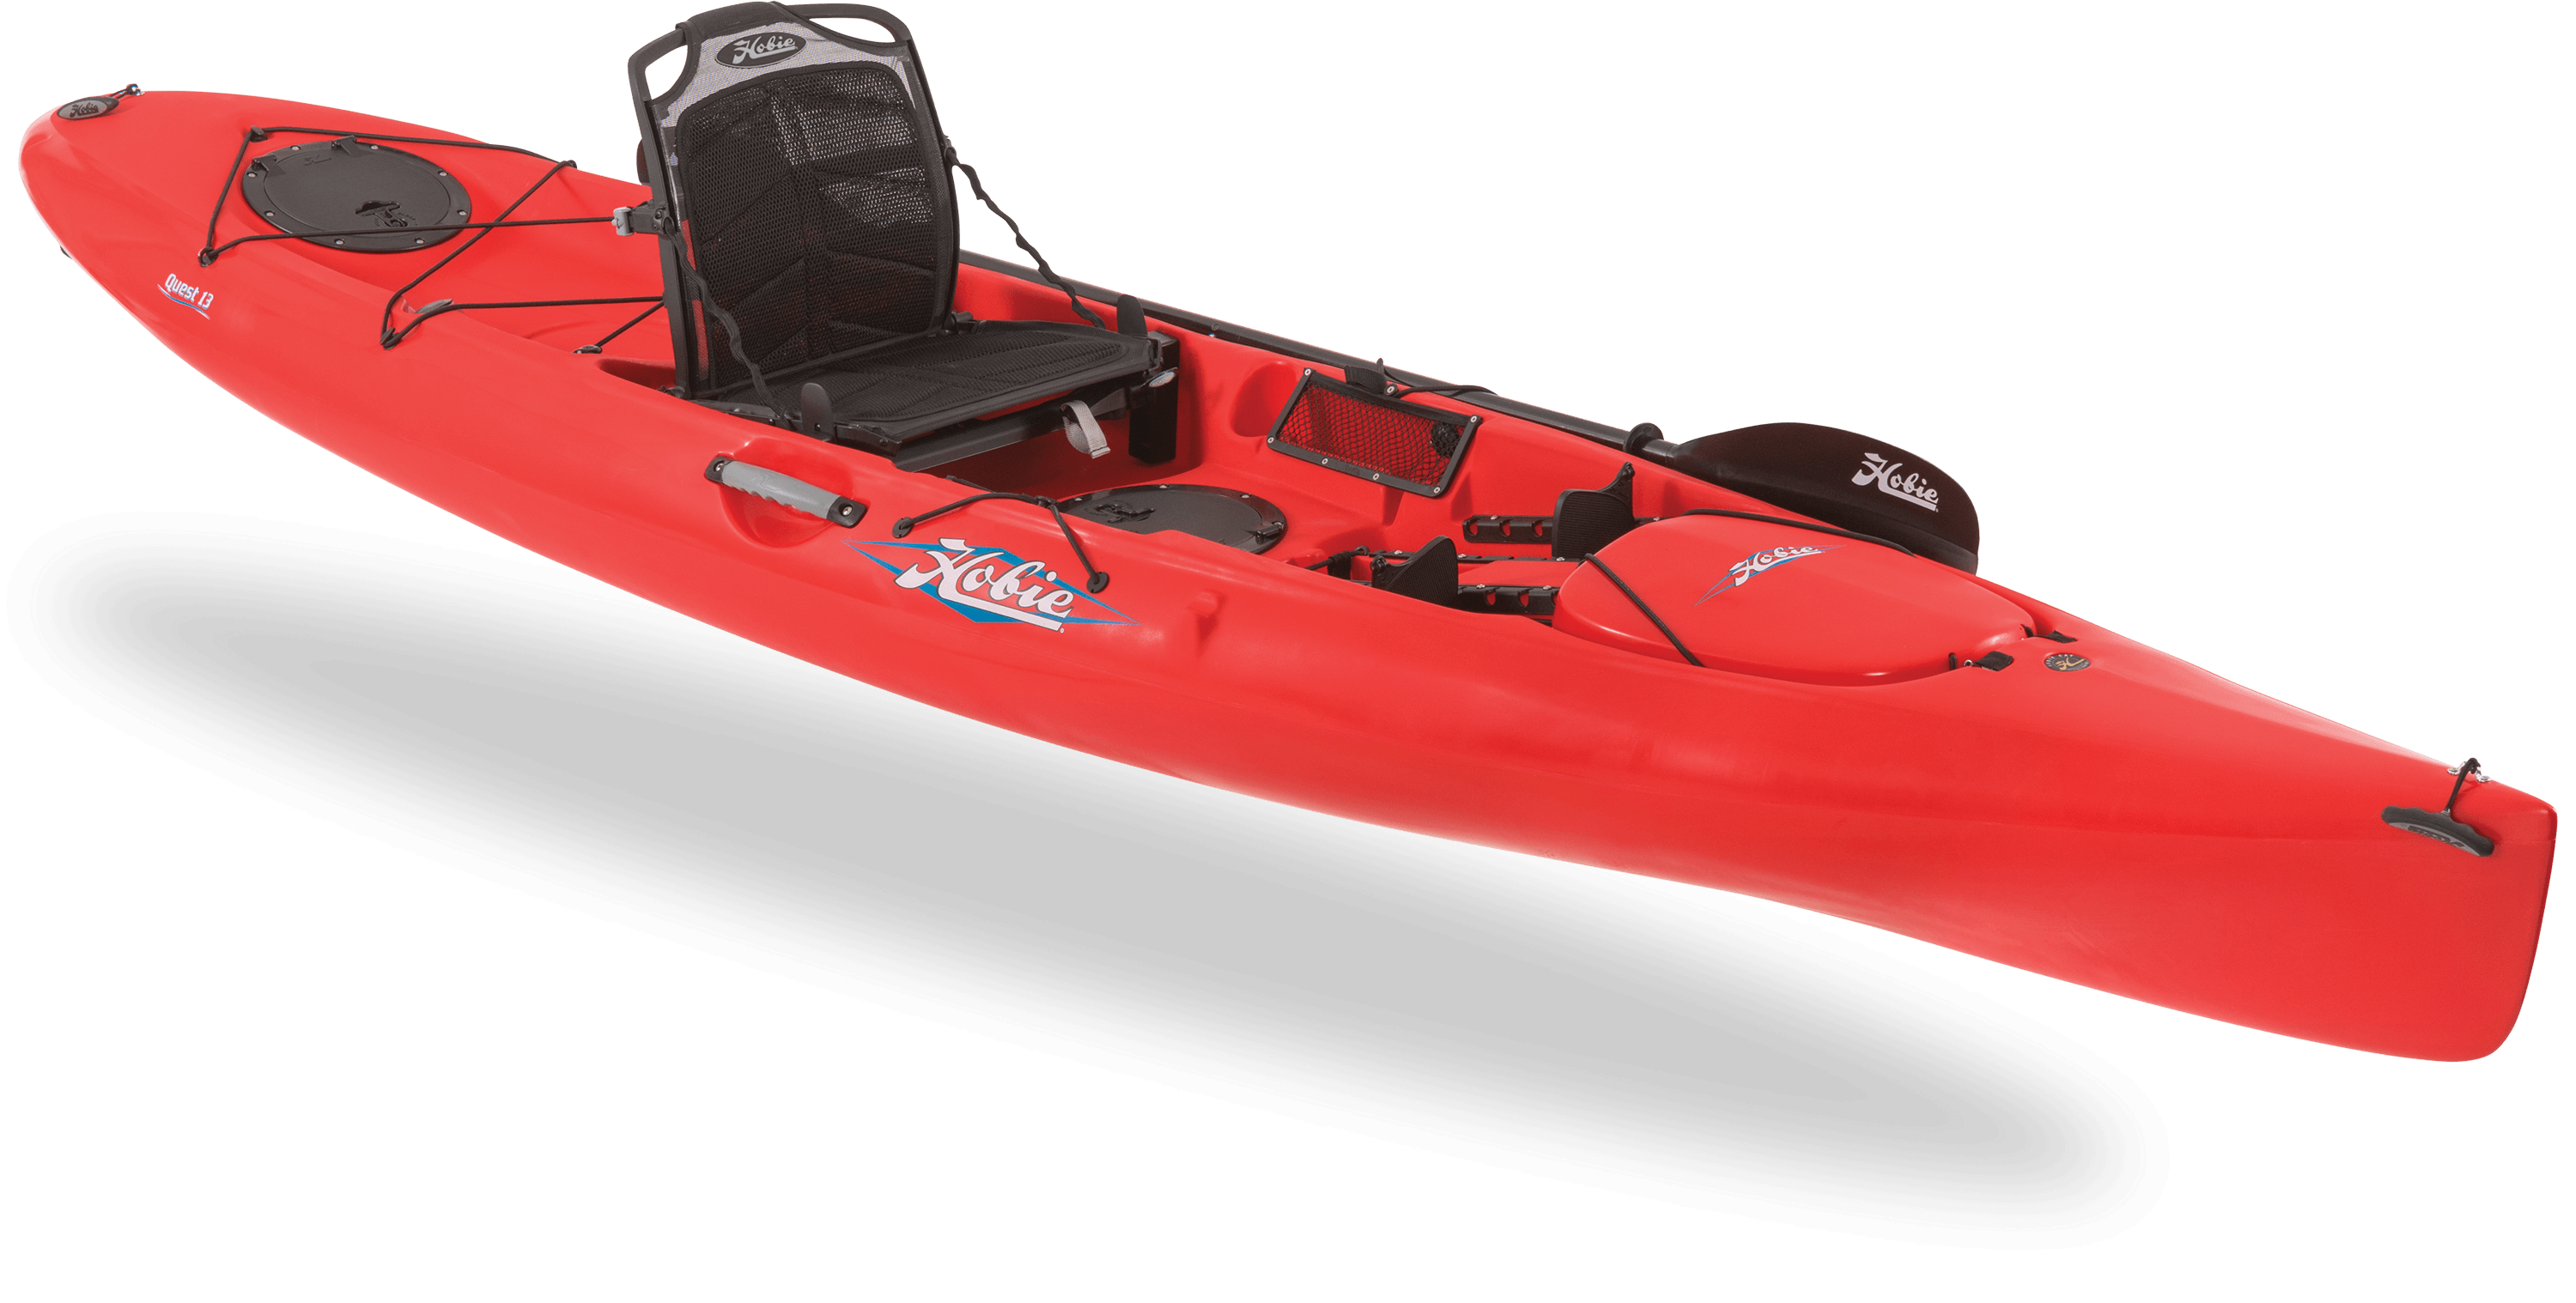 Hobie Quest 13 msrp $1400 | Fishing, Kayak and Canoe